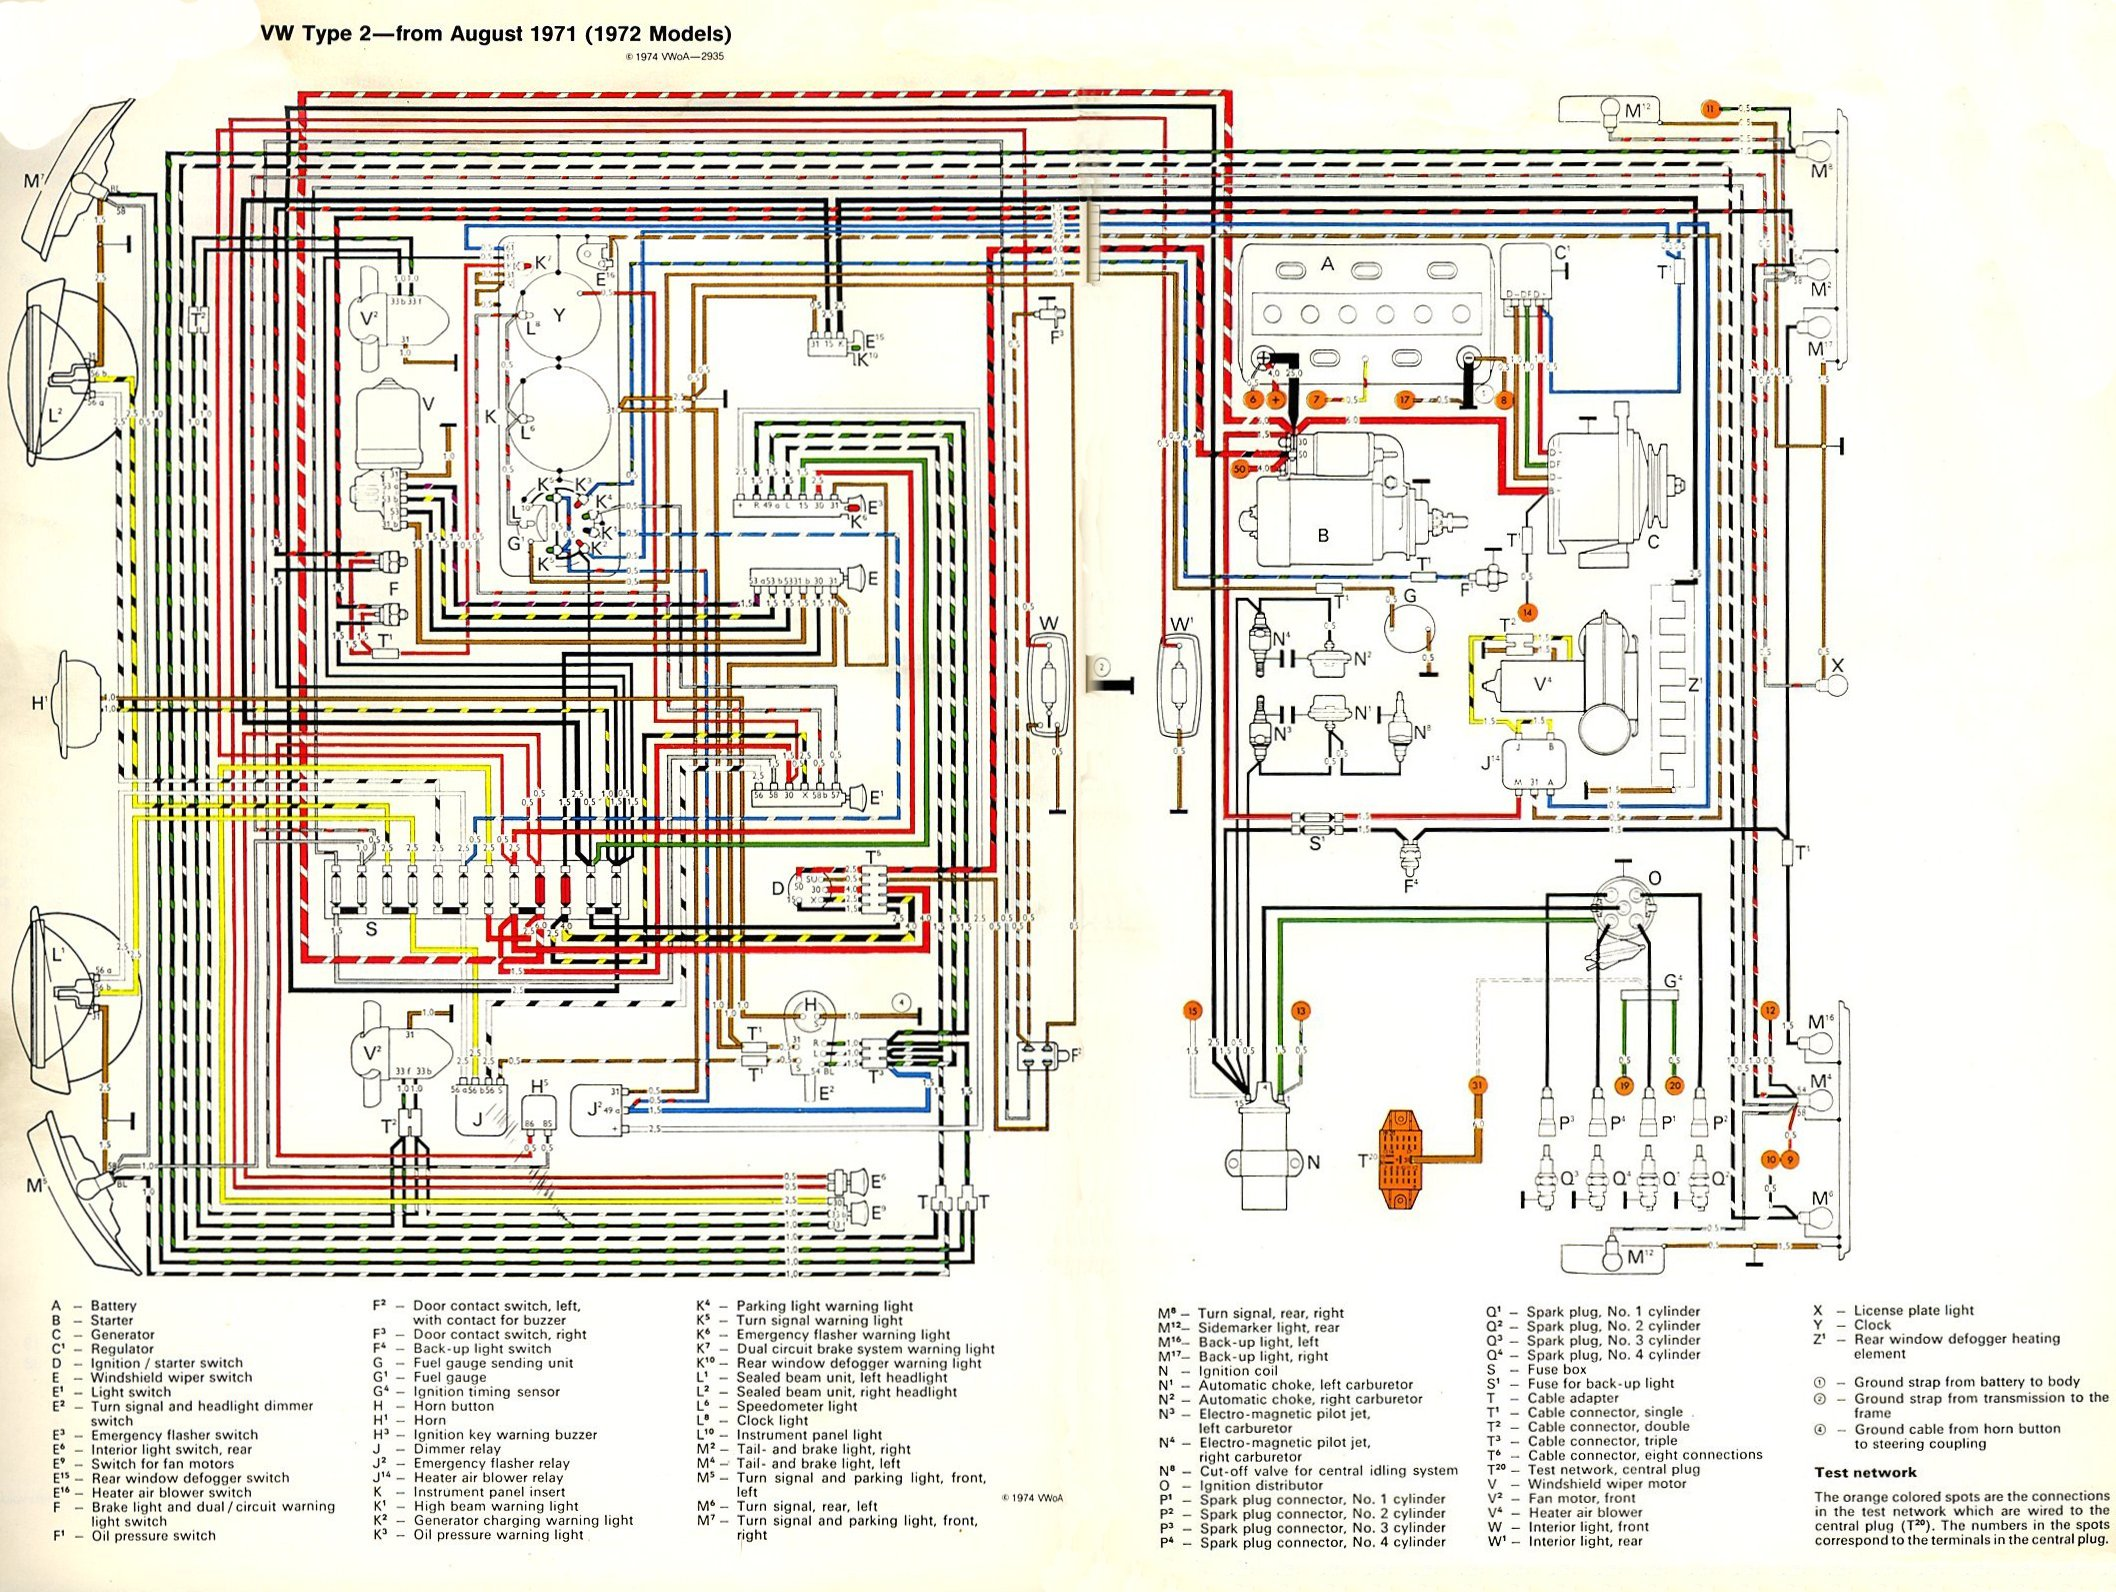 1975 chevelle wiring schematic 1971 chevelle wiring diagram 1971 image wiring diagram 71 chevelle wiring diagram 71 auto wiring diagram